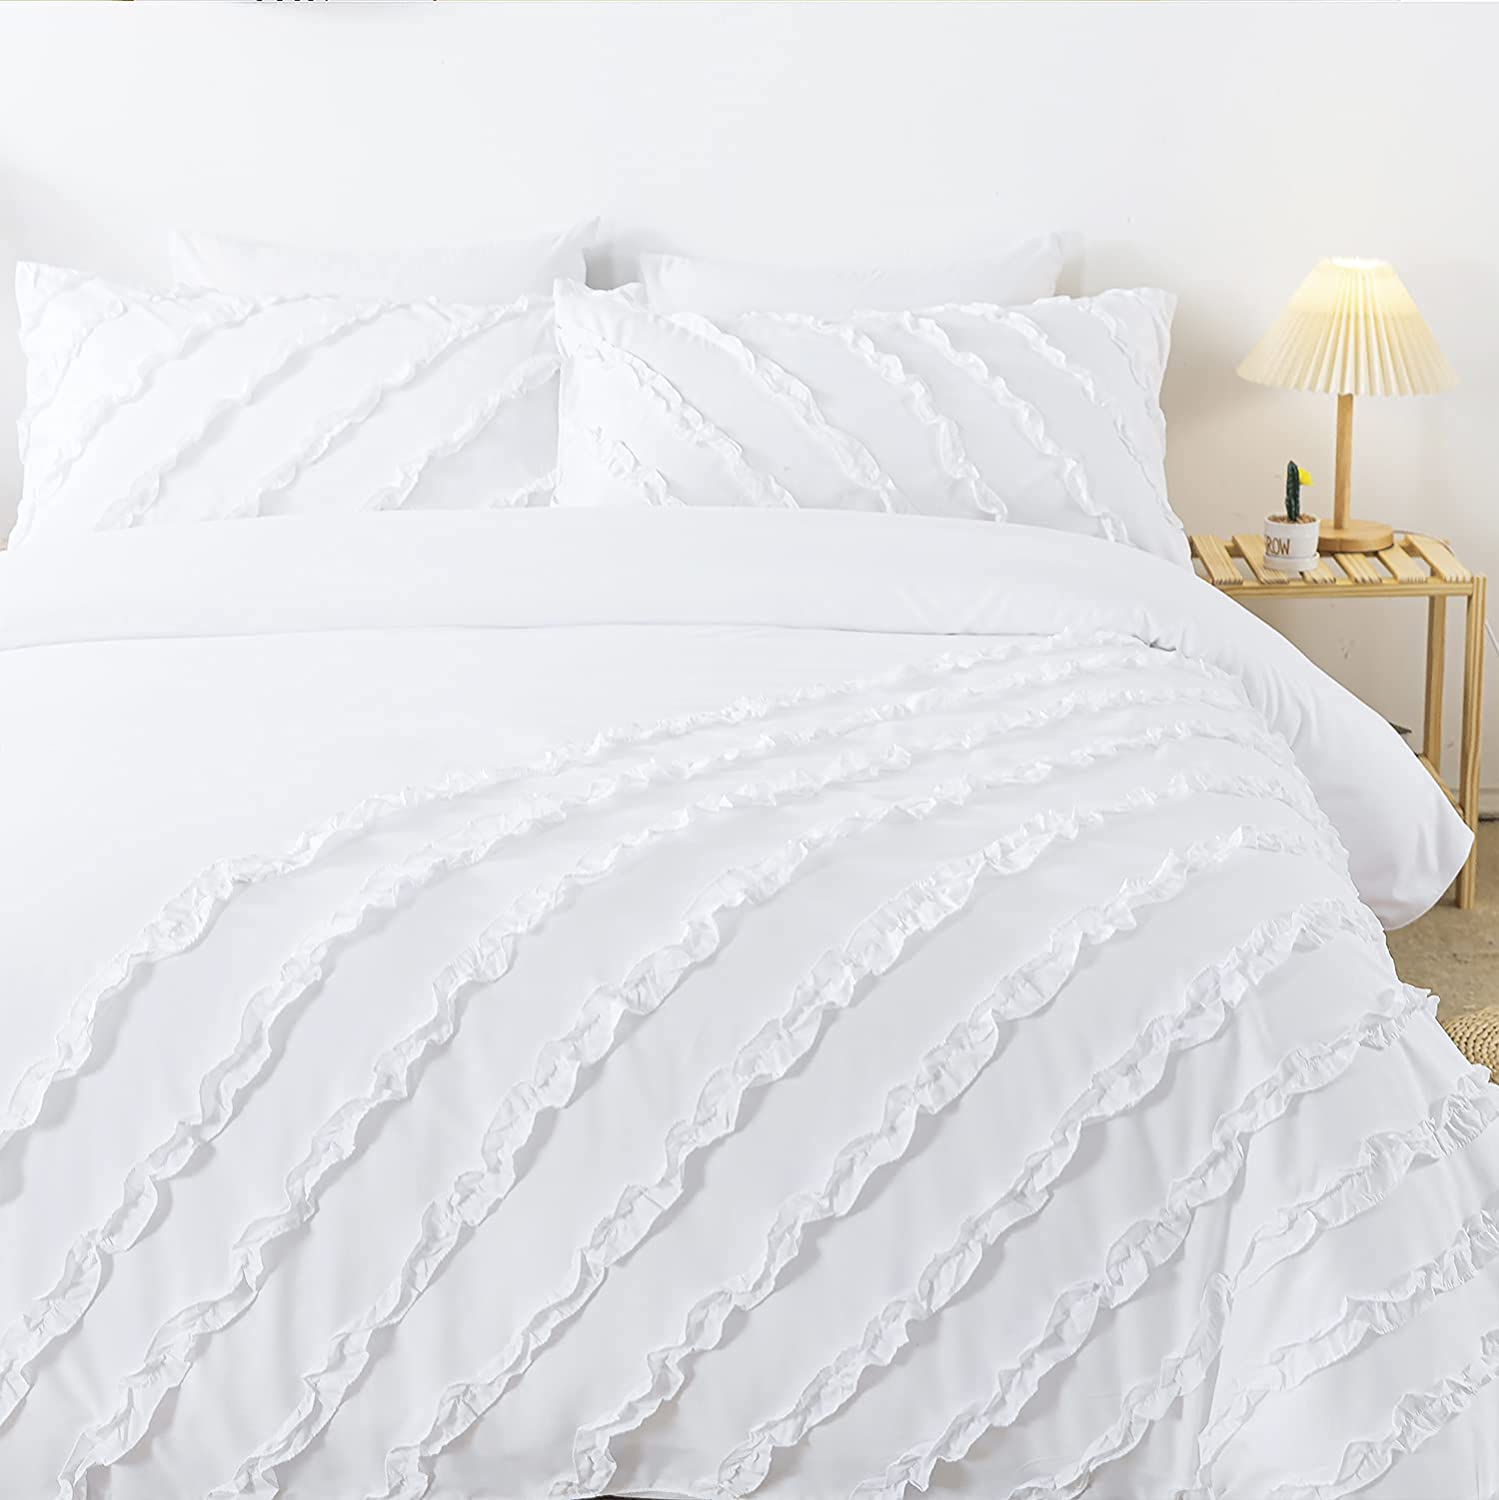 TEALP 3 Piece White King Duvet Cover, 2 Pillowcases with Zipper Corner Ties, 100% 120gsm Microfiber Duvet Cover, Luxurious Decorative, Luxury Hotel Quality Bedding